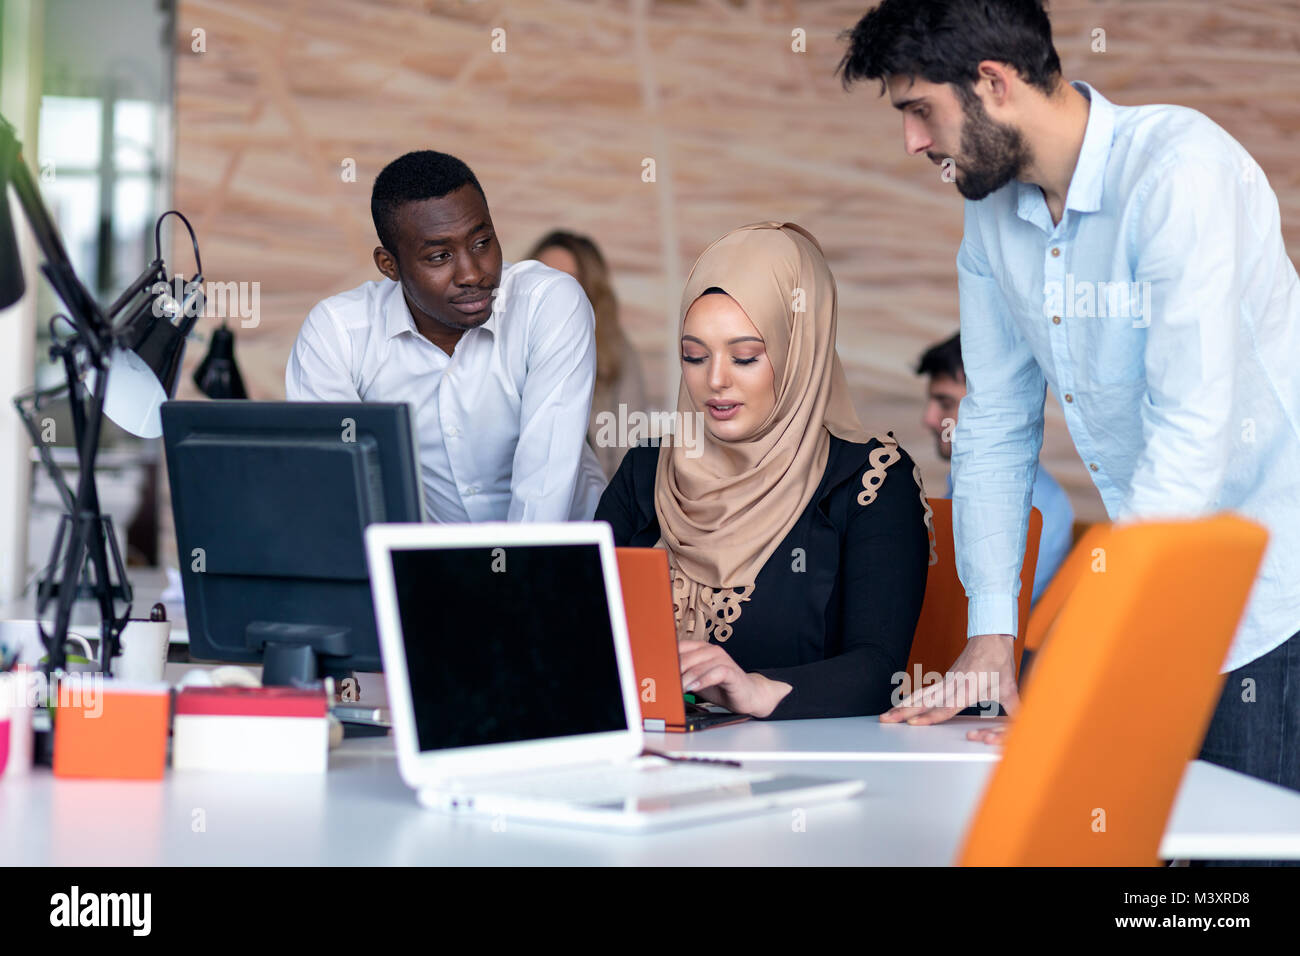 startup business team on meeting in modern bright office interior brainstorming, working on laptop and tablet computer - Stock Image